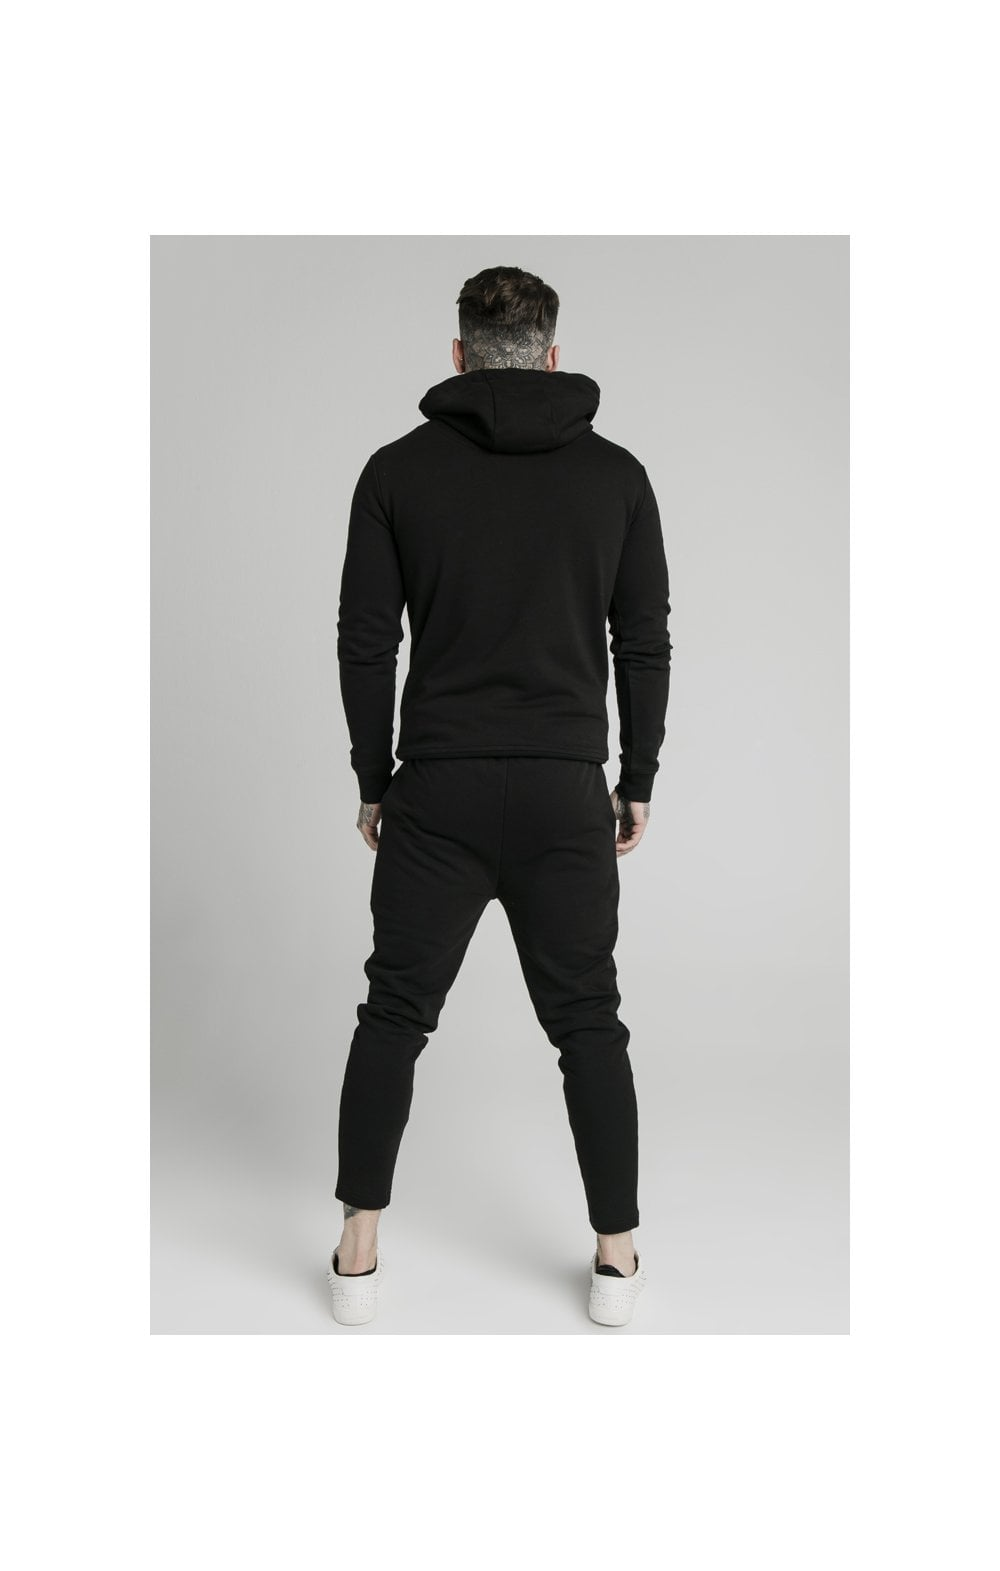 Load image into Gallery viewer, SikSilk Smart Overhead Hoodie - Black (5)